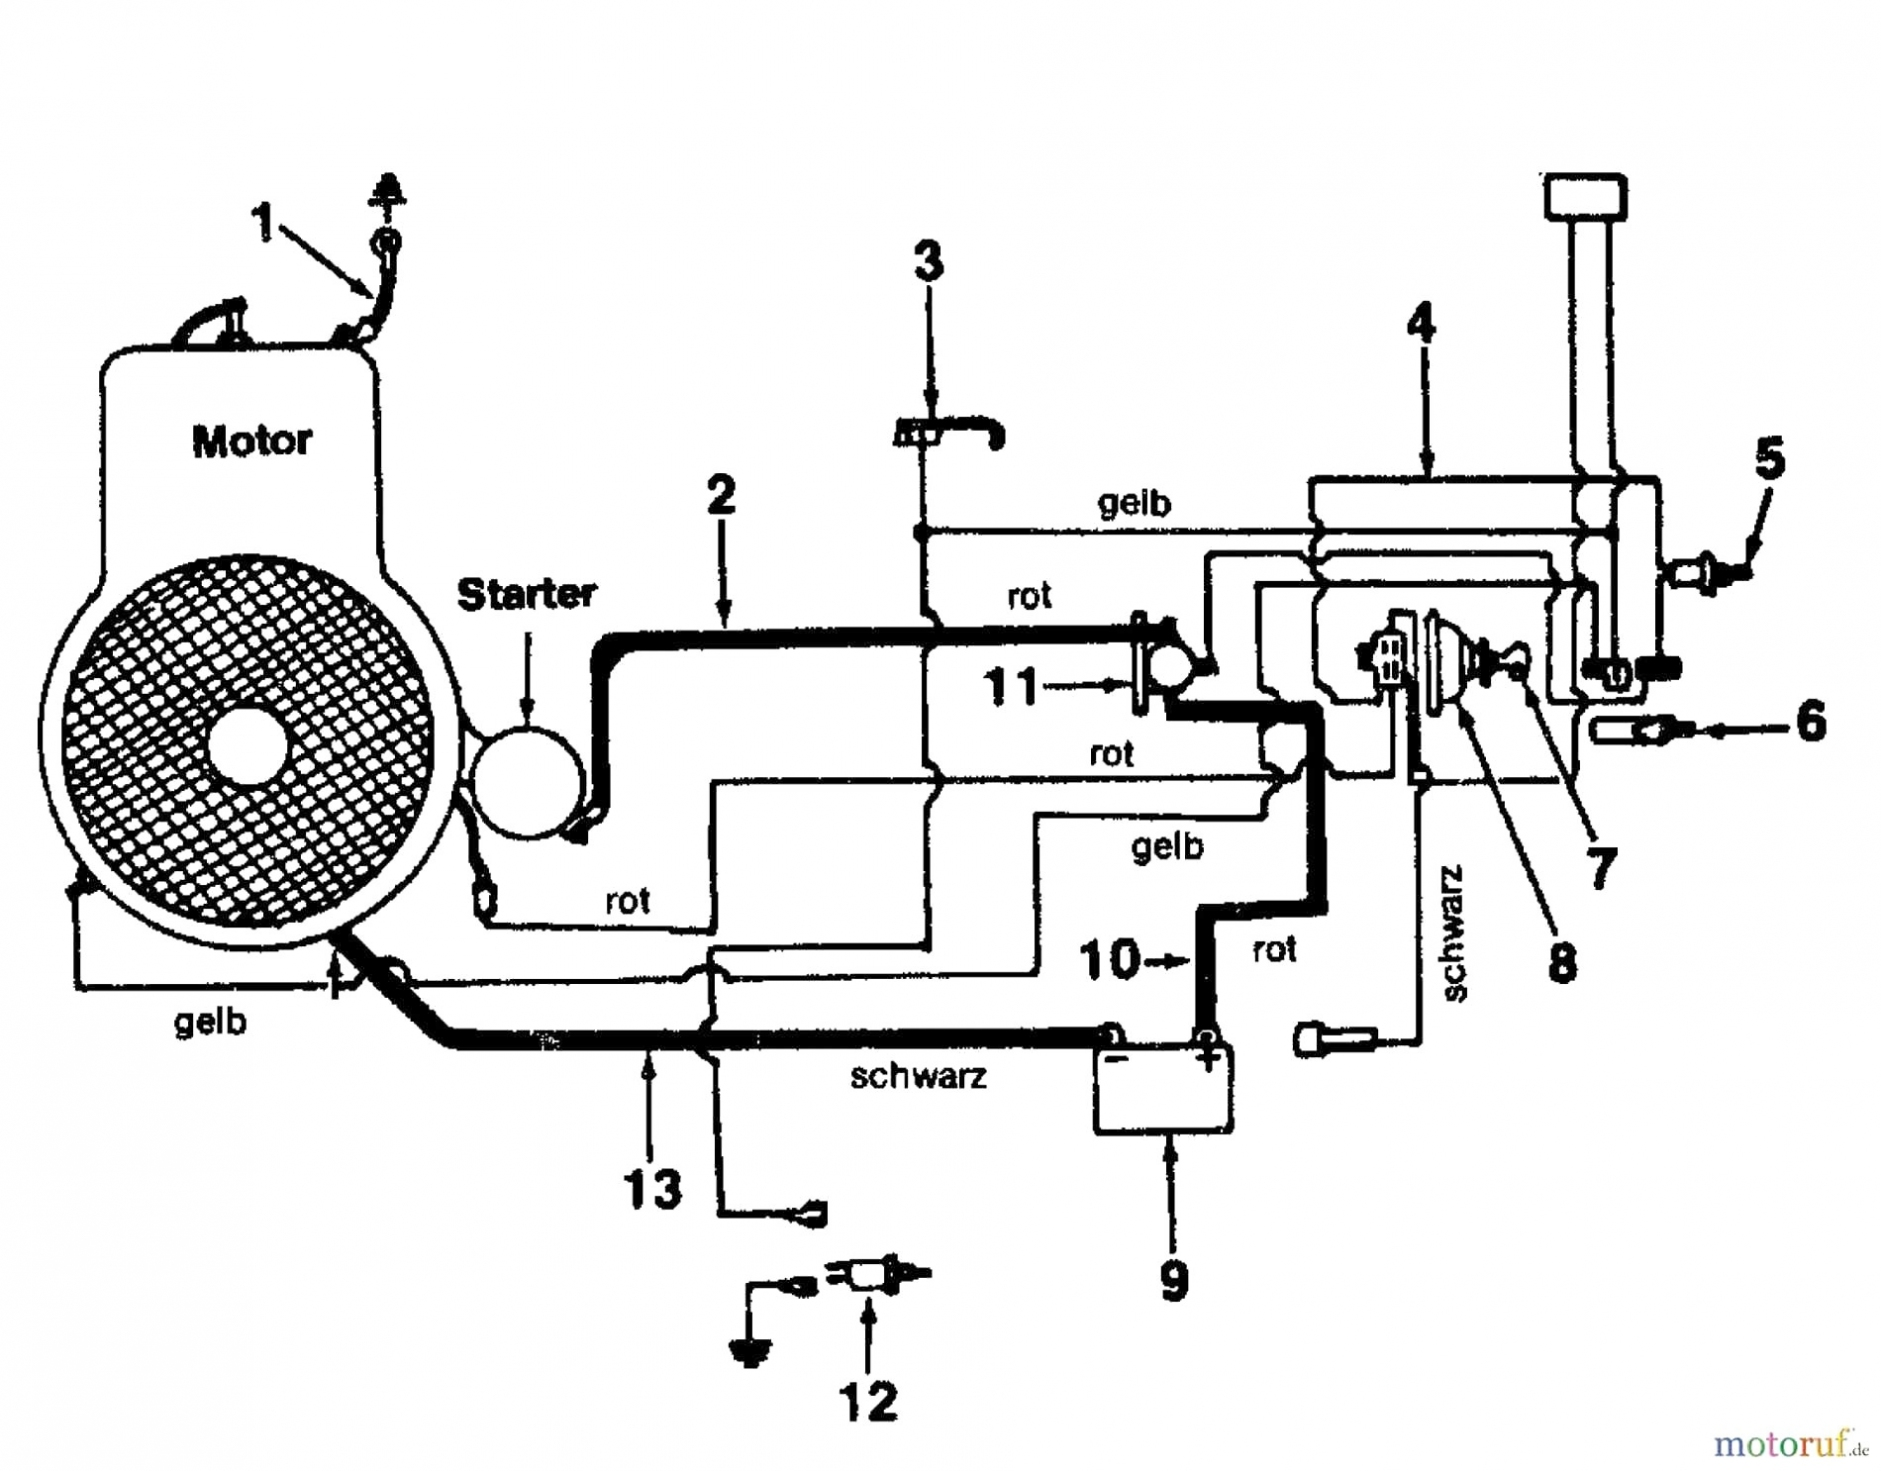 hight resolution of 1881x1471 murray inch riding mower drive belt diagram air american samoa riding lawn mower drawing